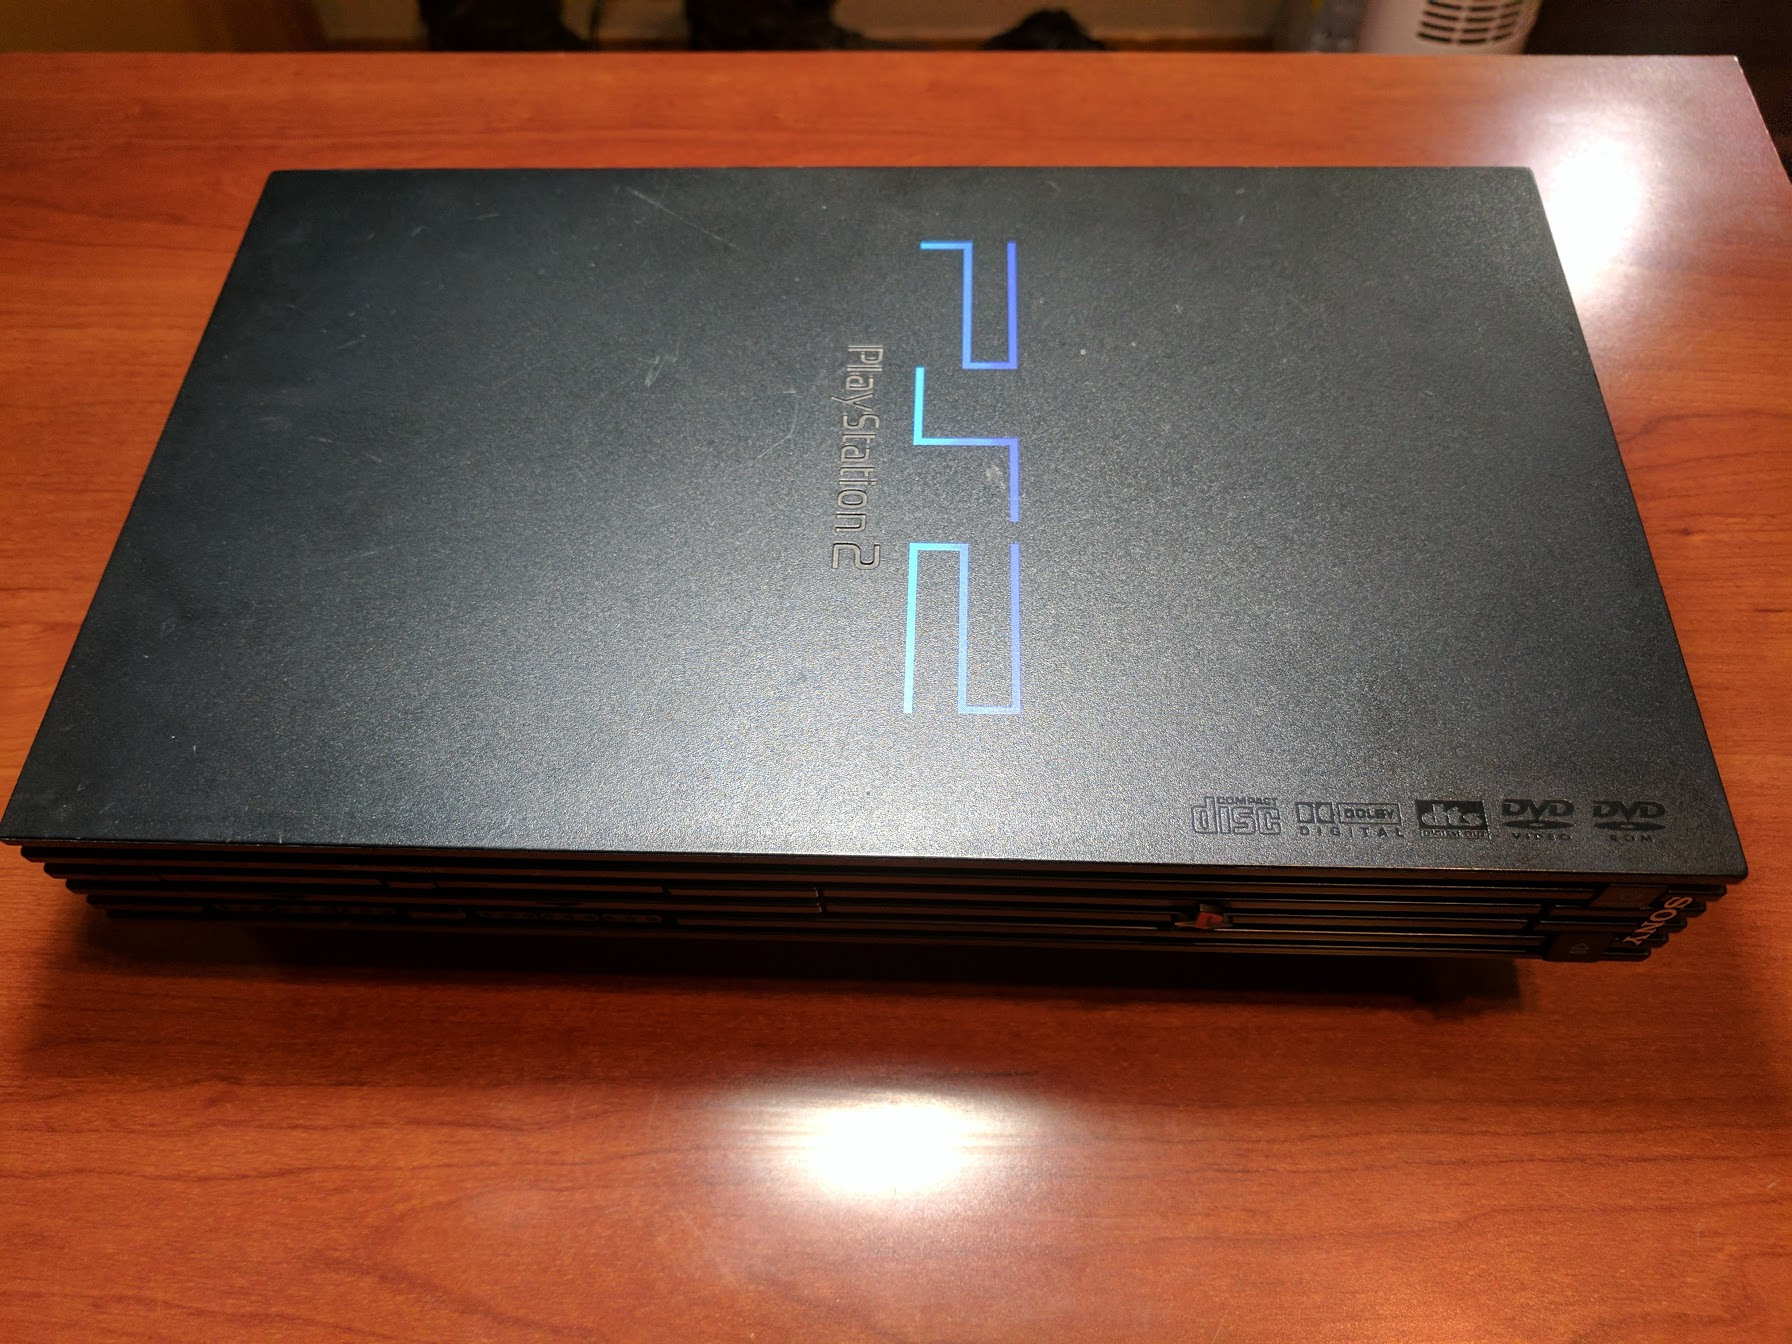 SCPH-39001 PS2